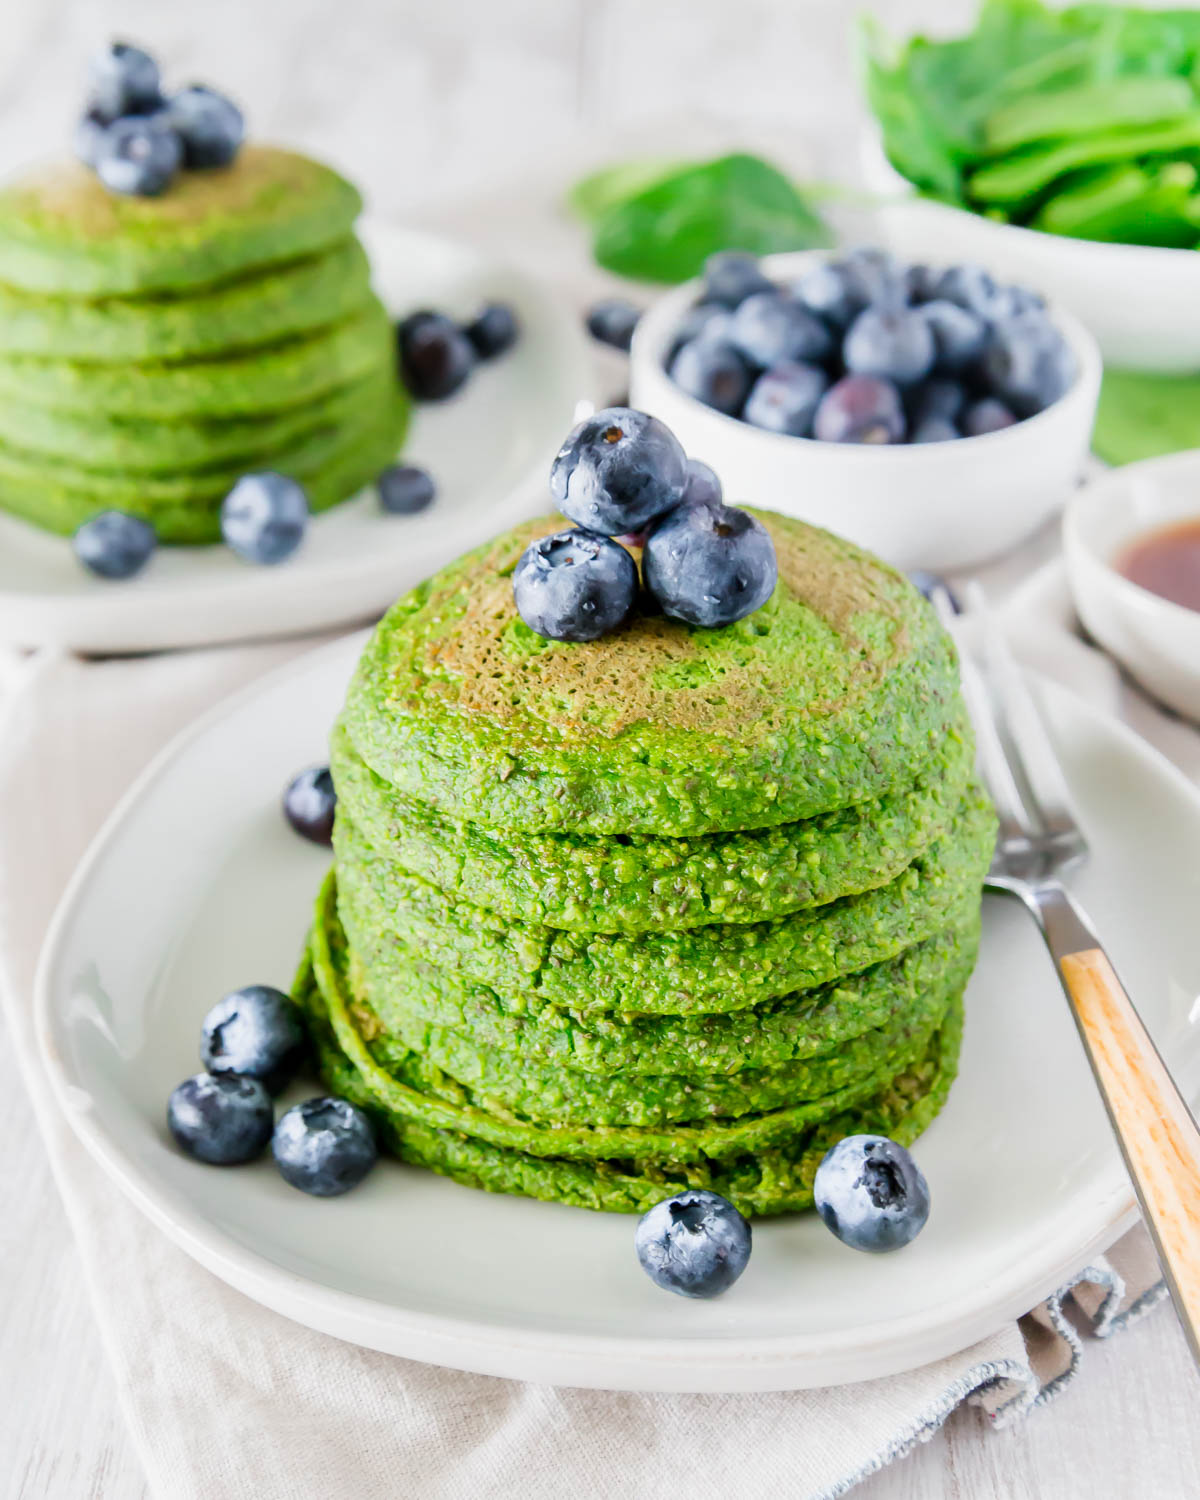 Green pancakes made with fresh spinach have absolutely no food coloring in them for a healthy and festive breakfast!